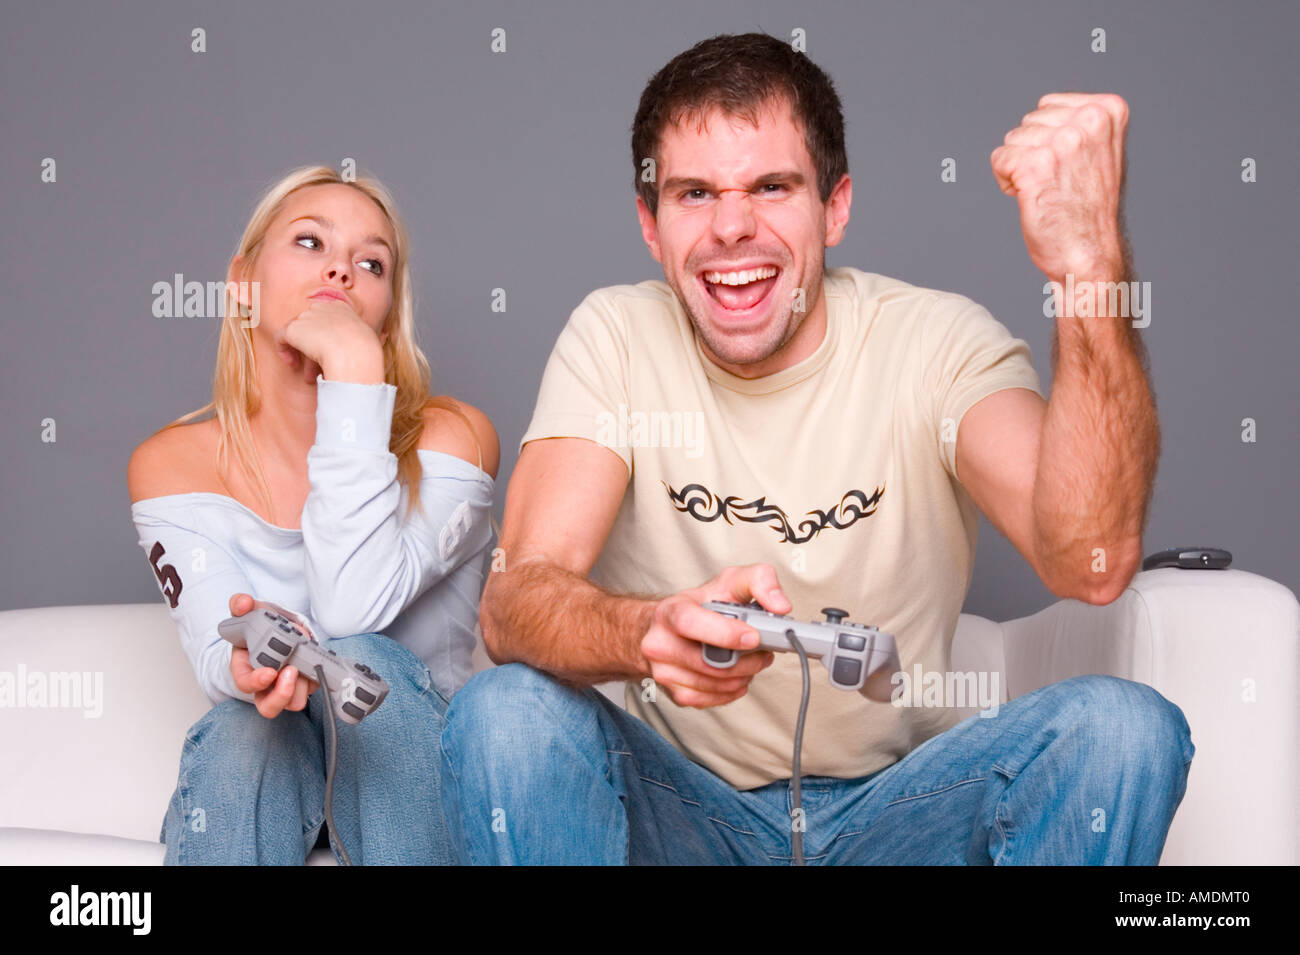 Jeune couple playing video game Photo Stock